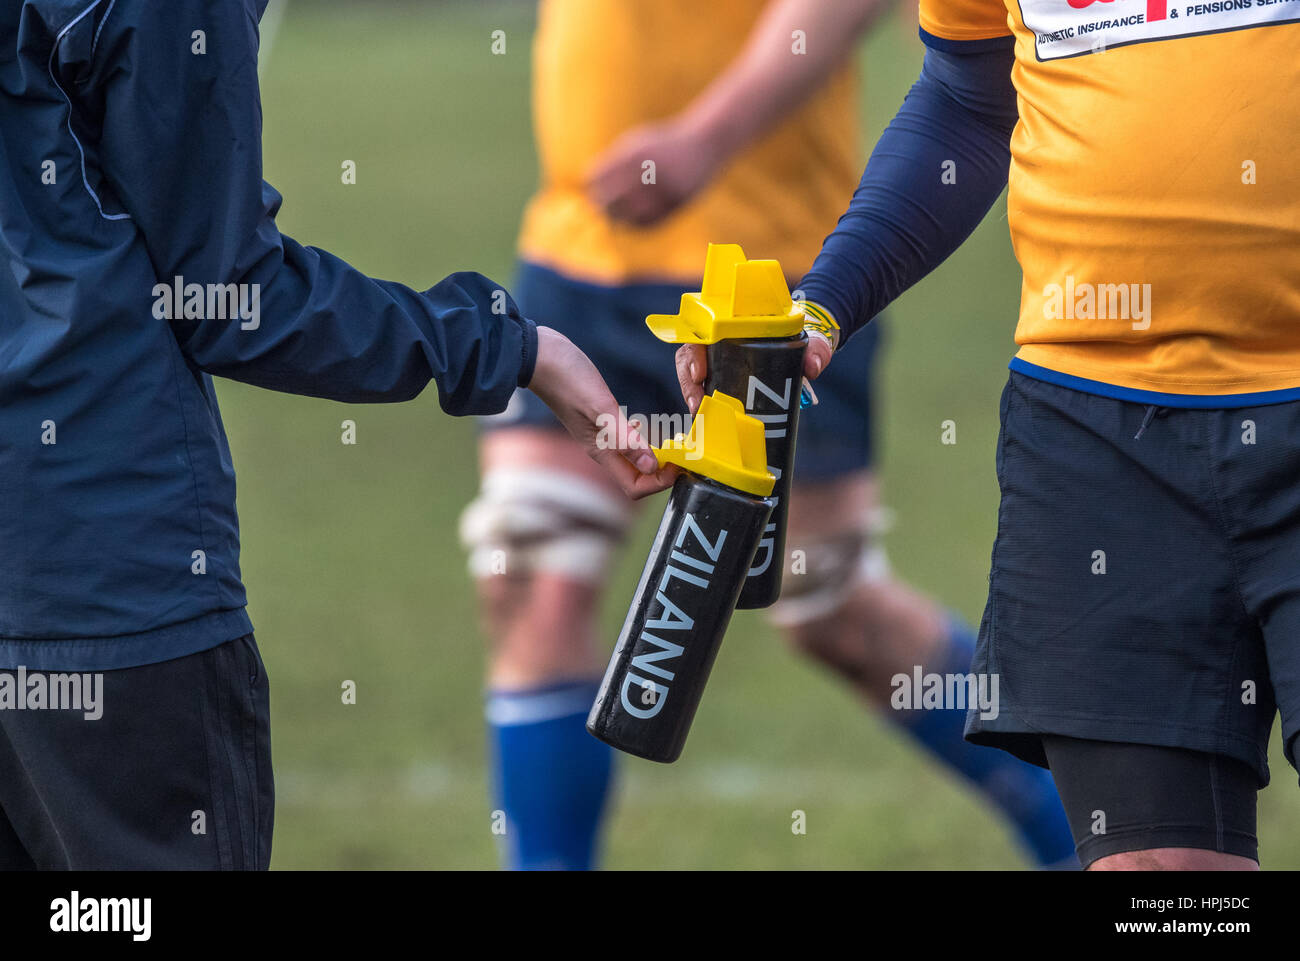 Rugby union player is handed liquids in a plastic bottle. - Stock Image